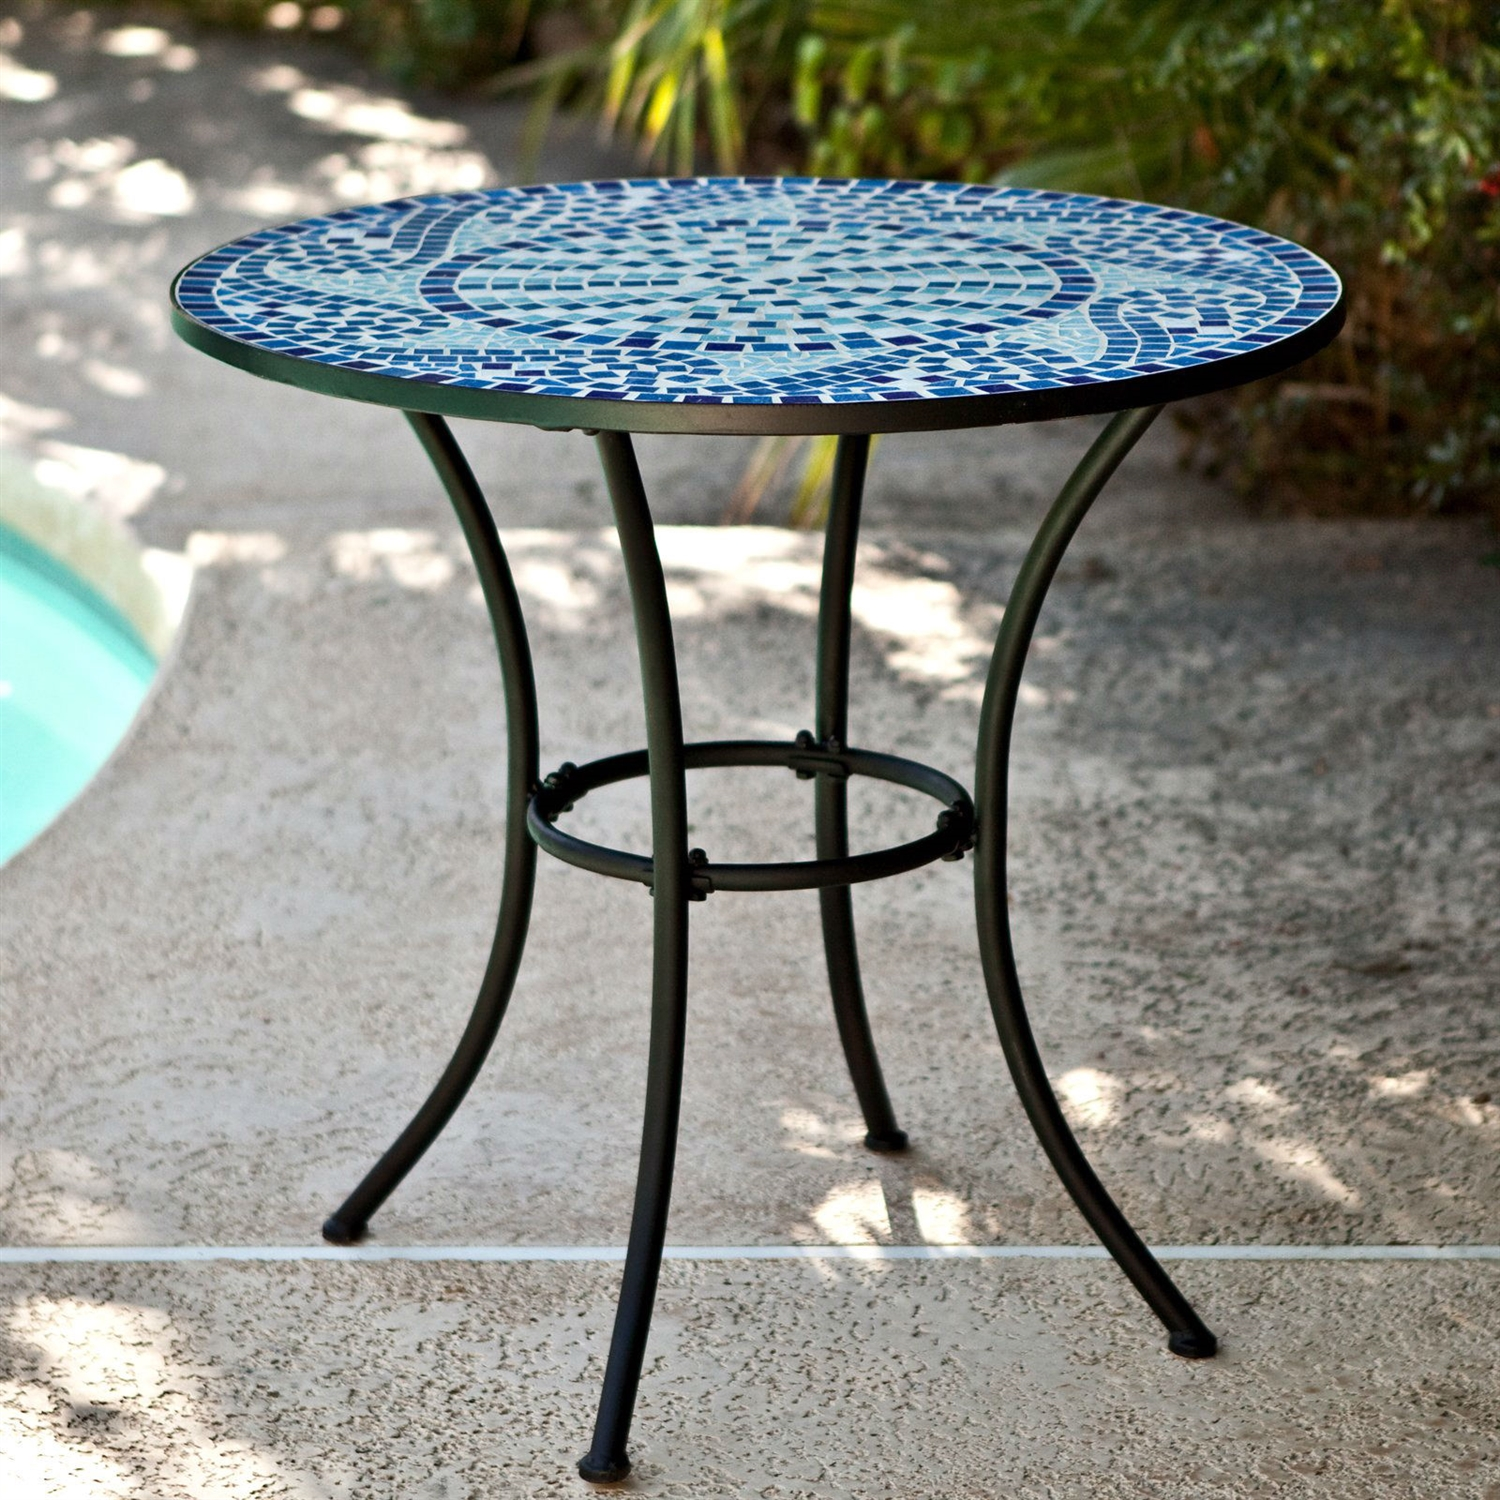 Round Patio Furniture Mosaic Tile Patio Tables Home Interior Blog